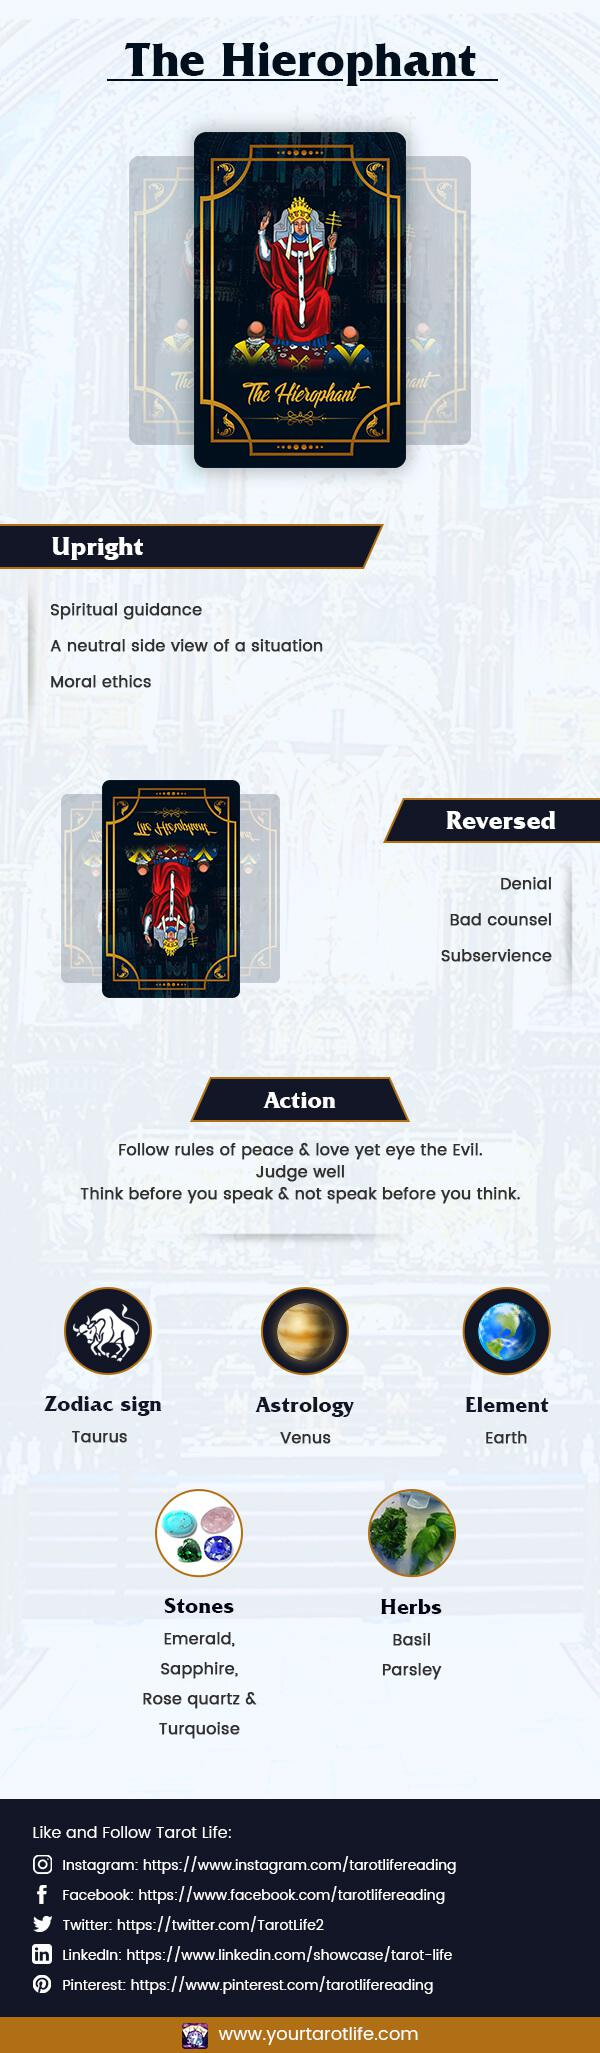 The Meaning of The Hierophant Tarot Card